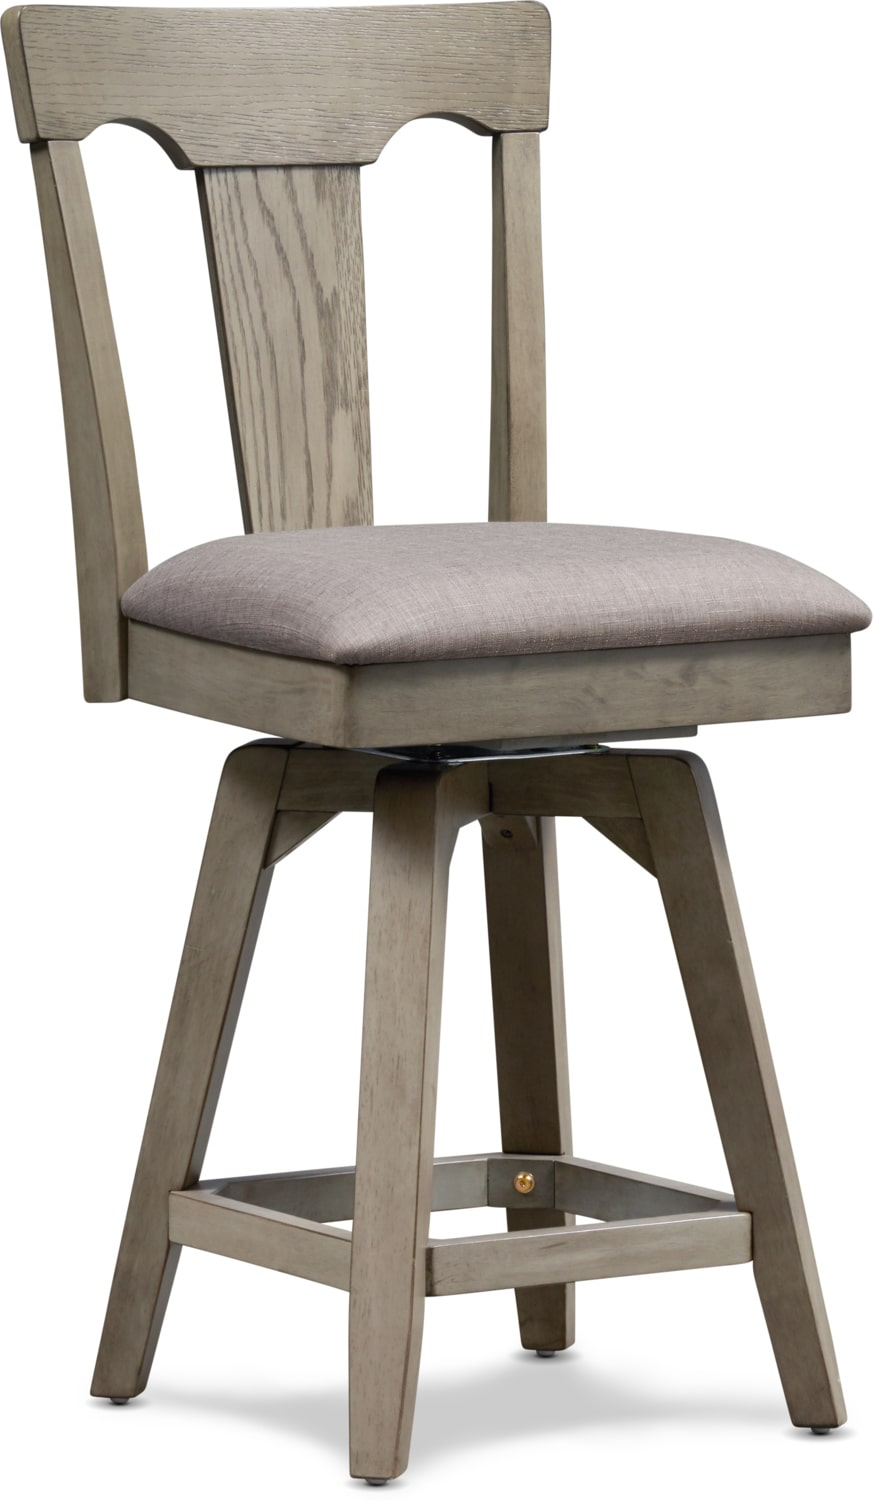 Counter Height Chairs With Arms Maxton Counter Height Stool Graystone